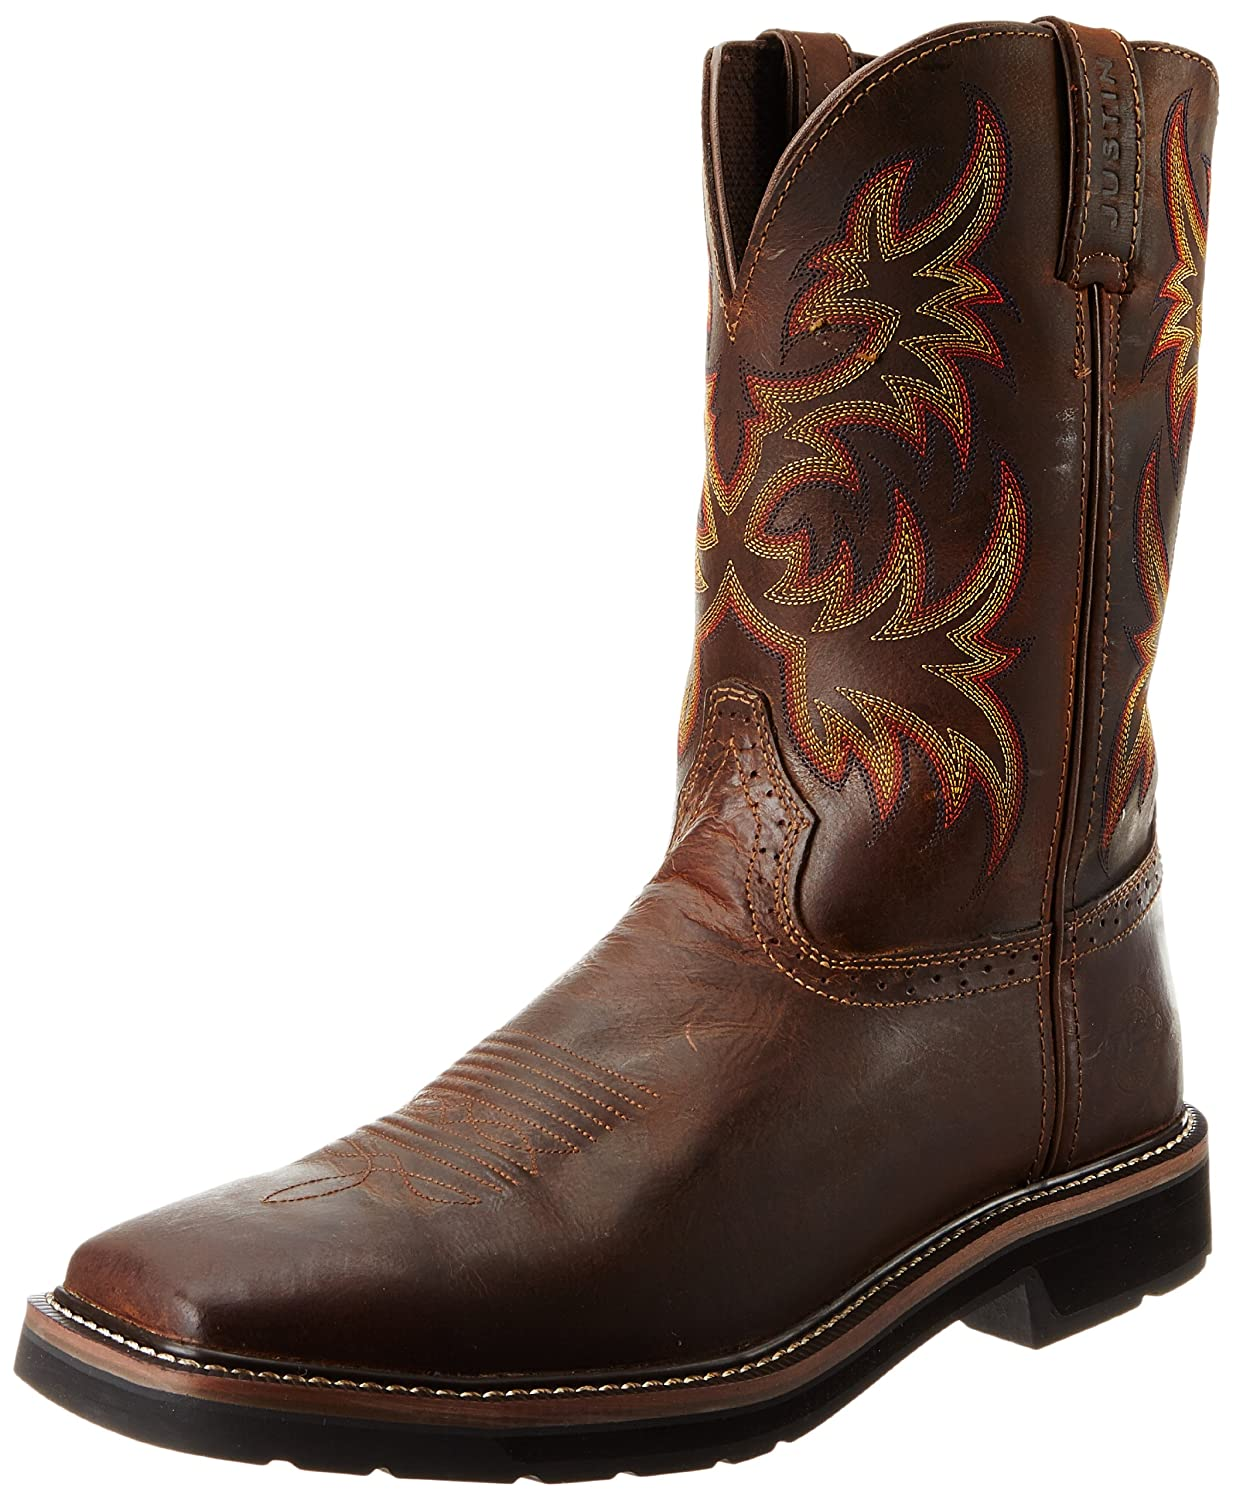 Justin Original Work Boots Men's Stampede Pull-On Square Toe Work Boot Stampede Pull On Square Toe